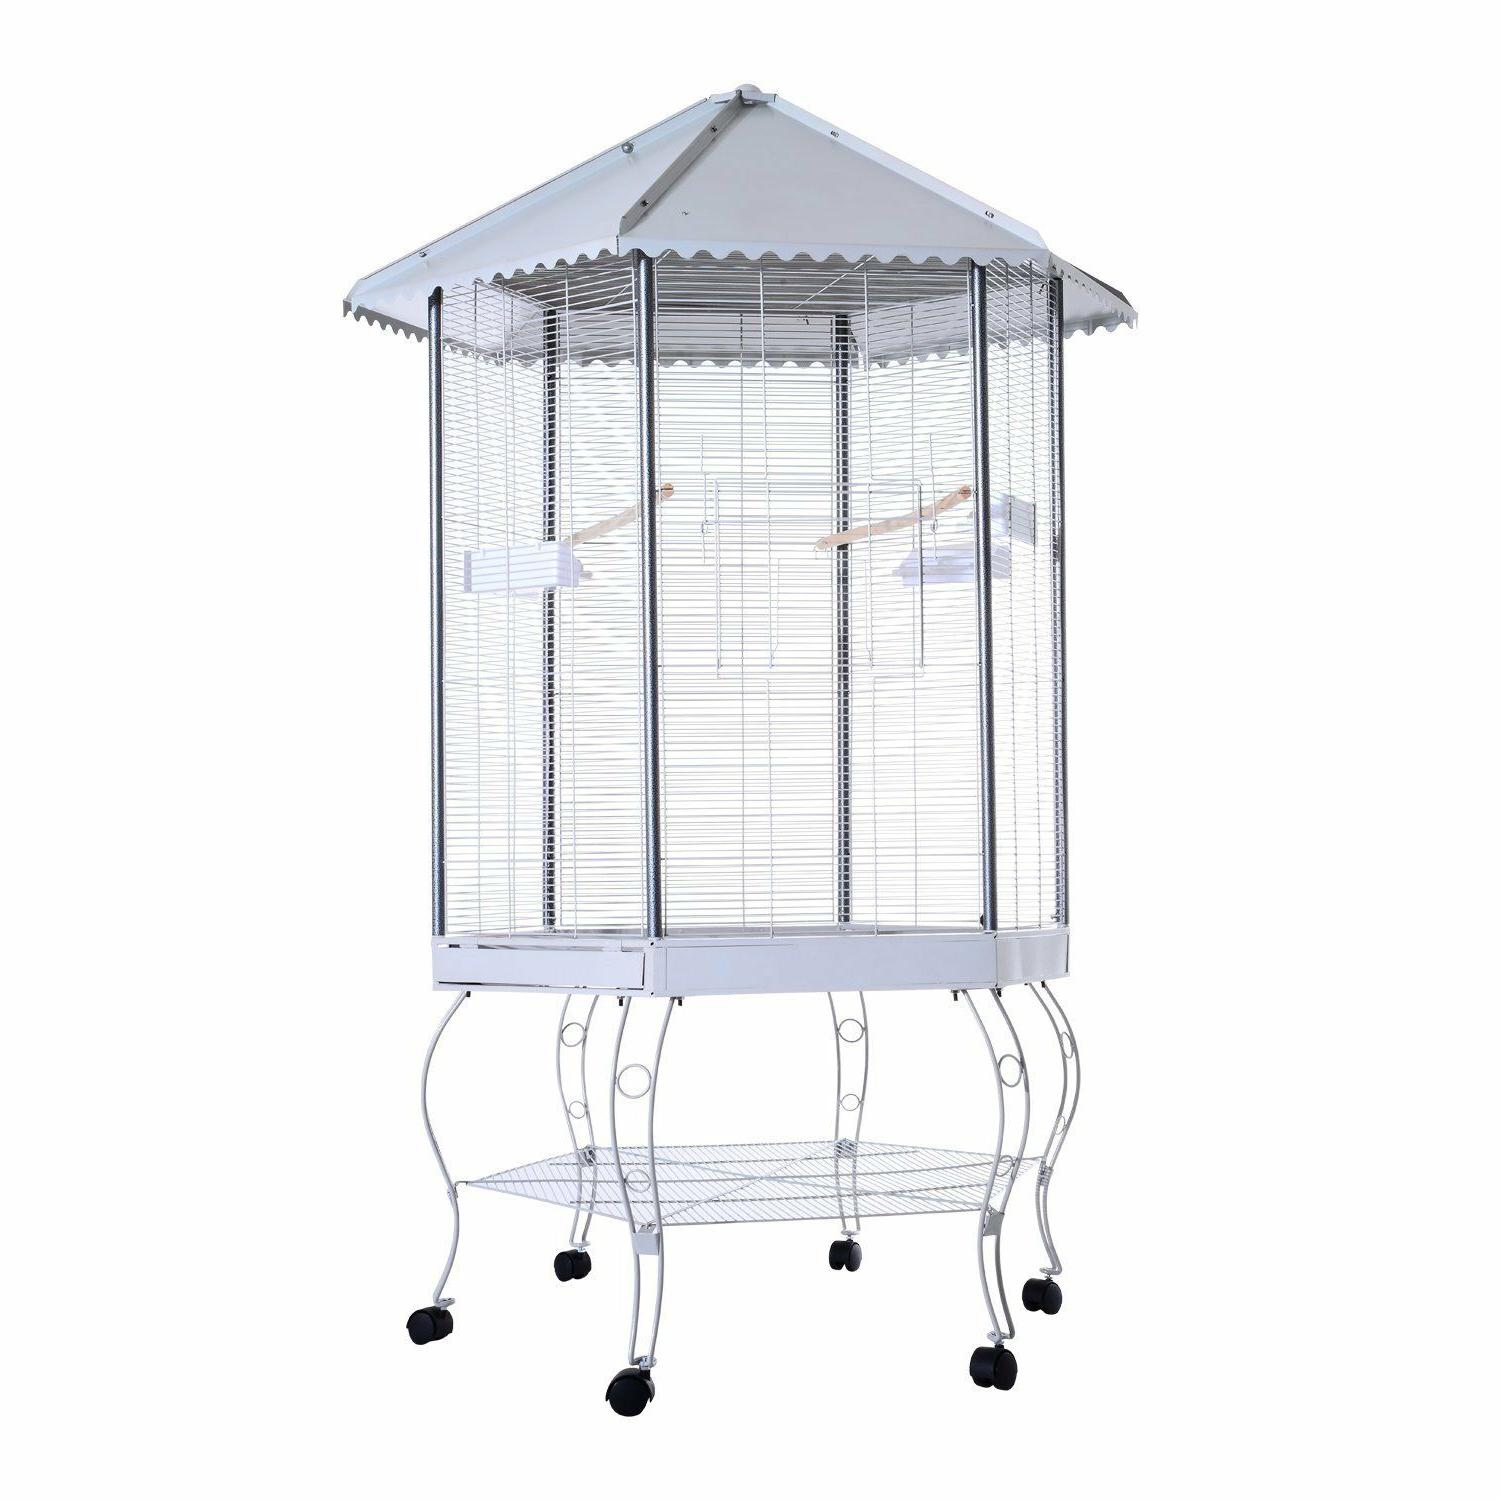 large Parrot outdoor indoor stand house